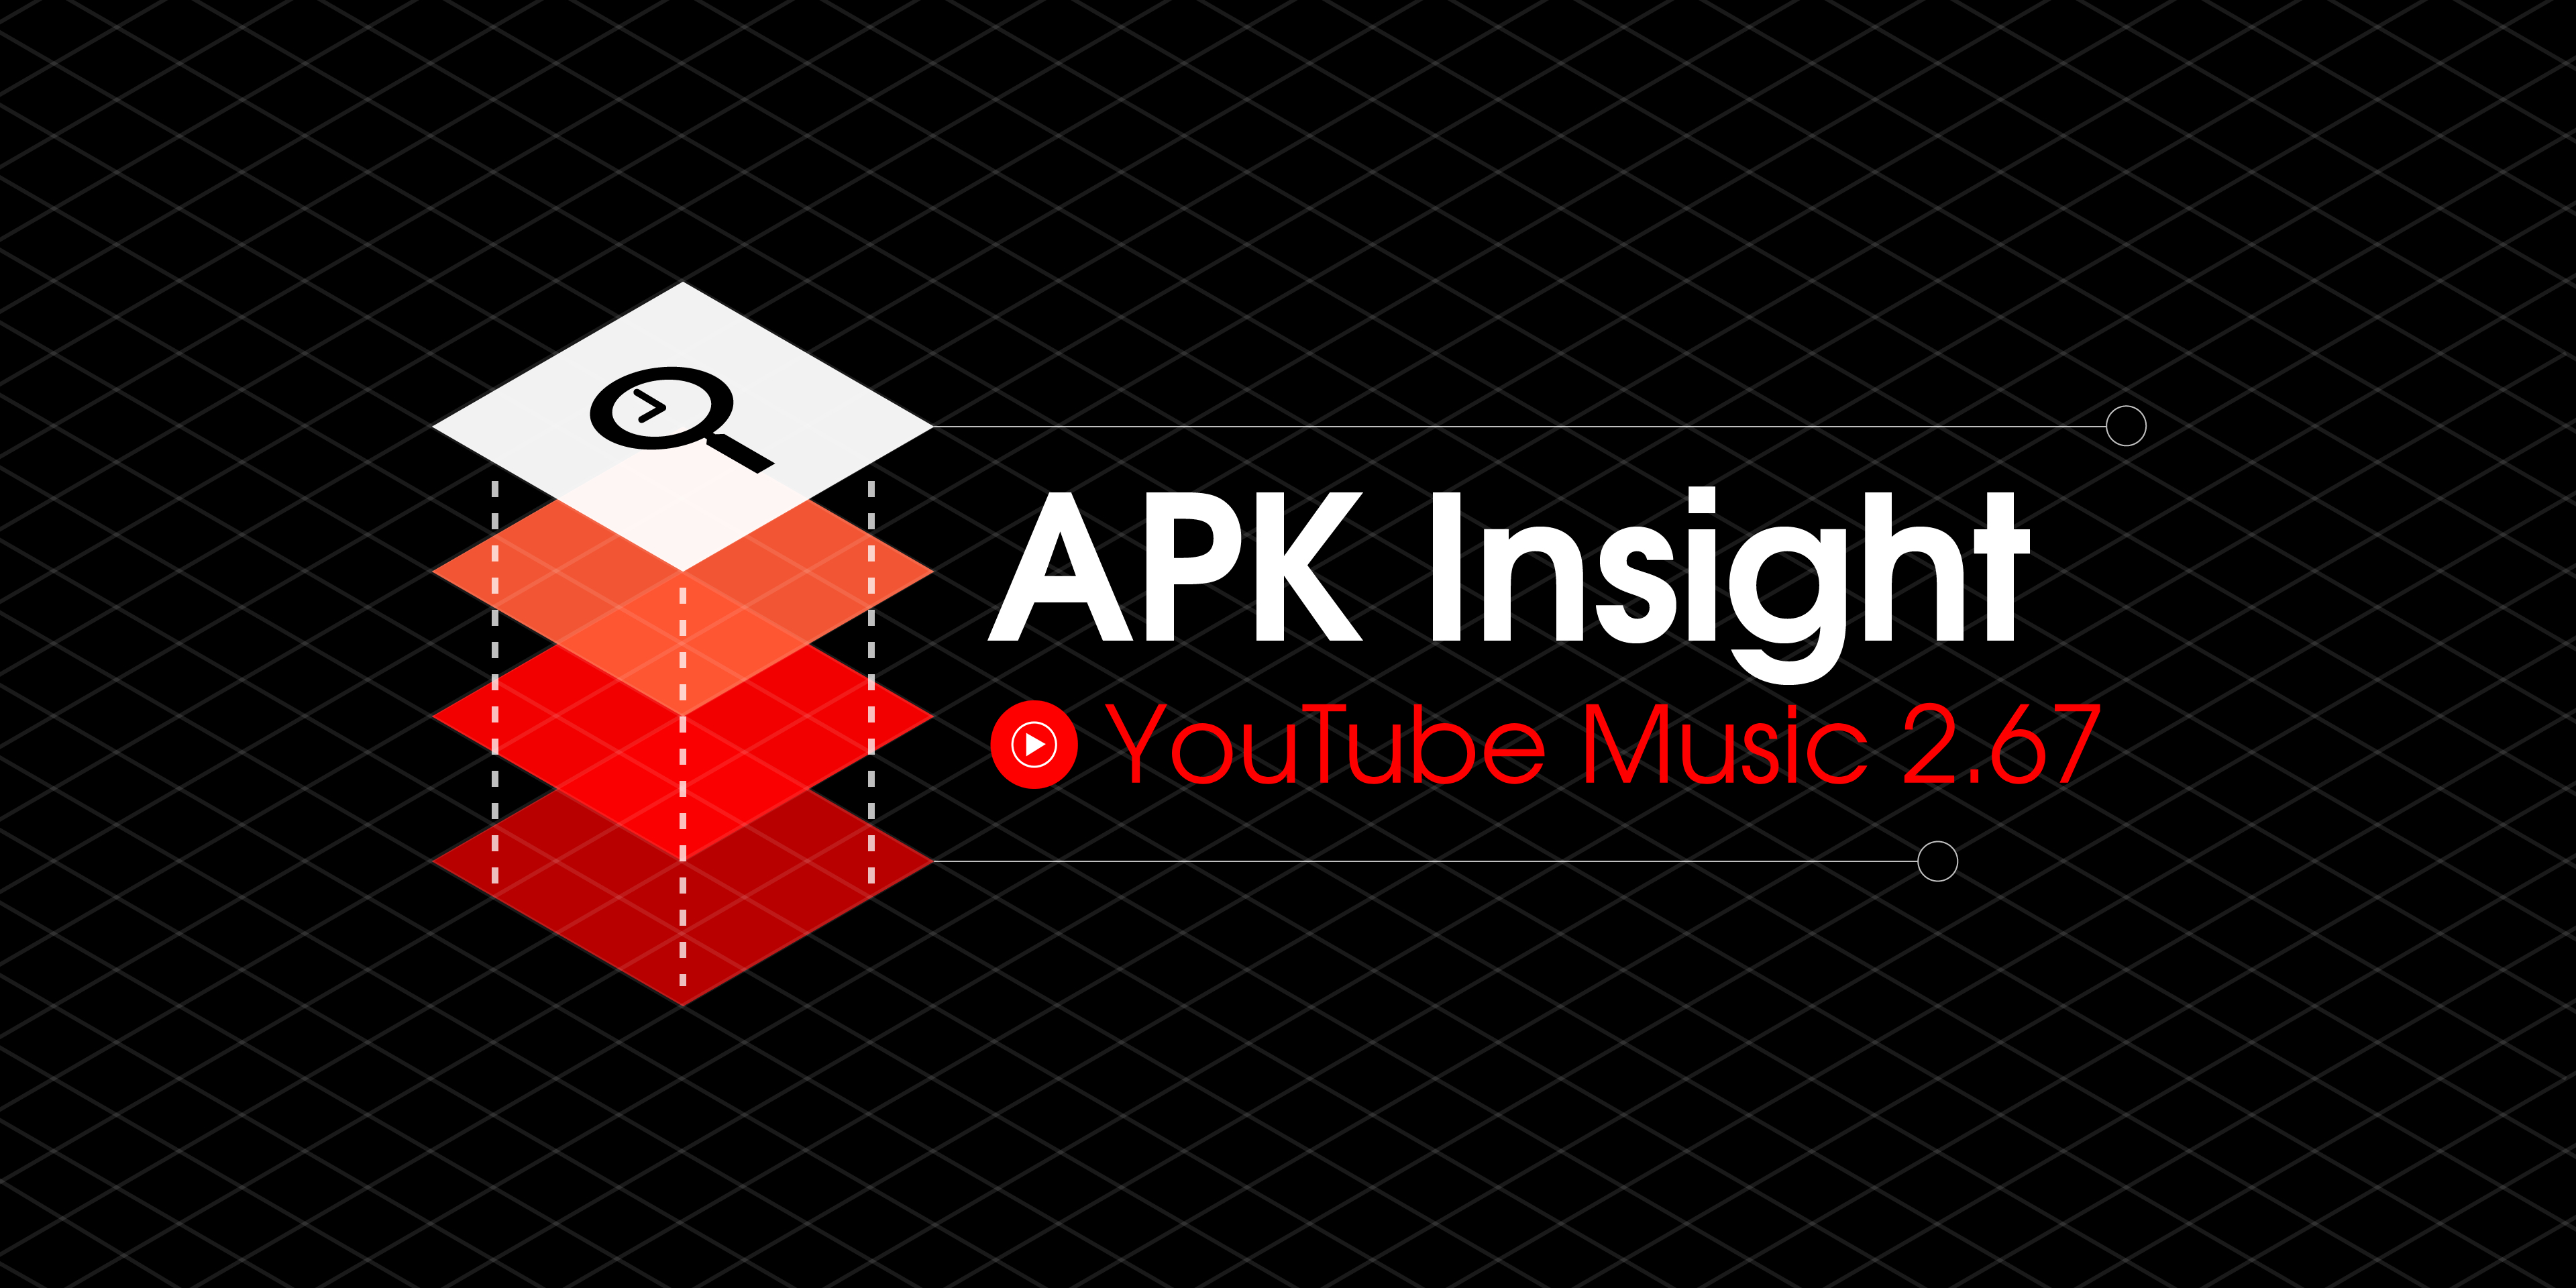 YouTube Music 2.67 features UI tweaks, Queue changes, more [APK Insight]